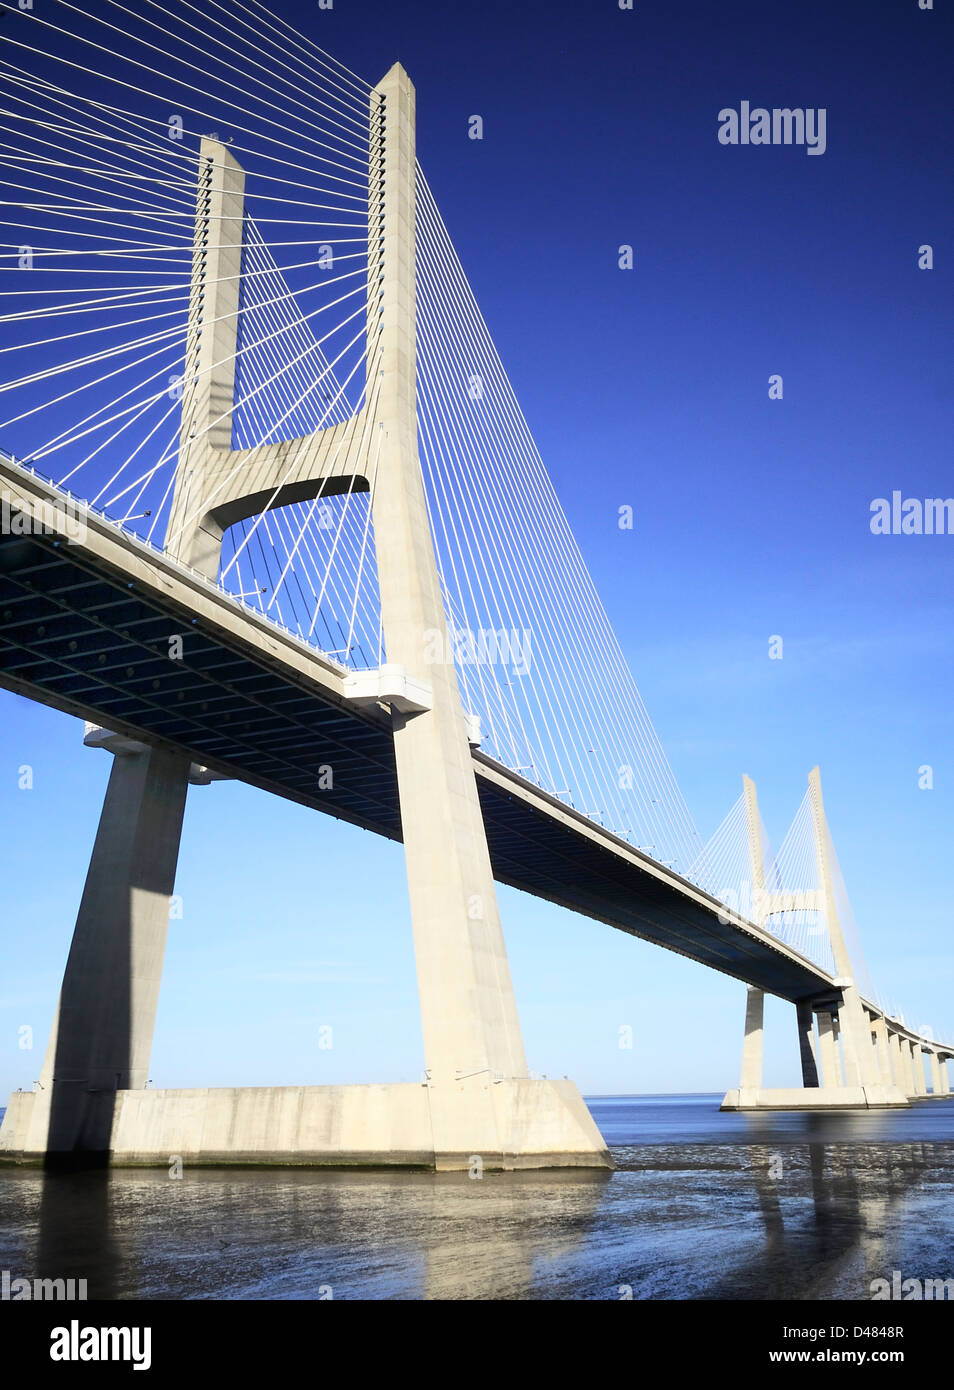 Vasco da Gama bridge is the largest in Europe over the Tagus river - Stock Image